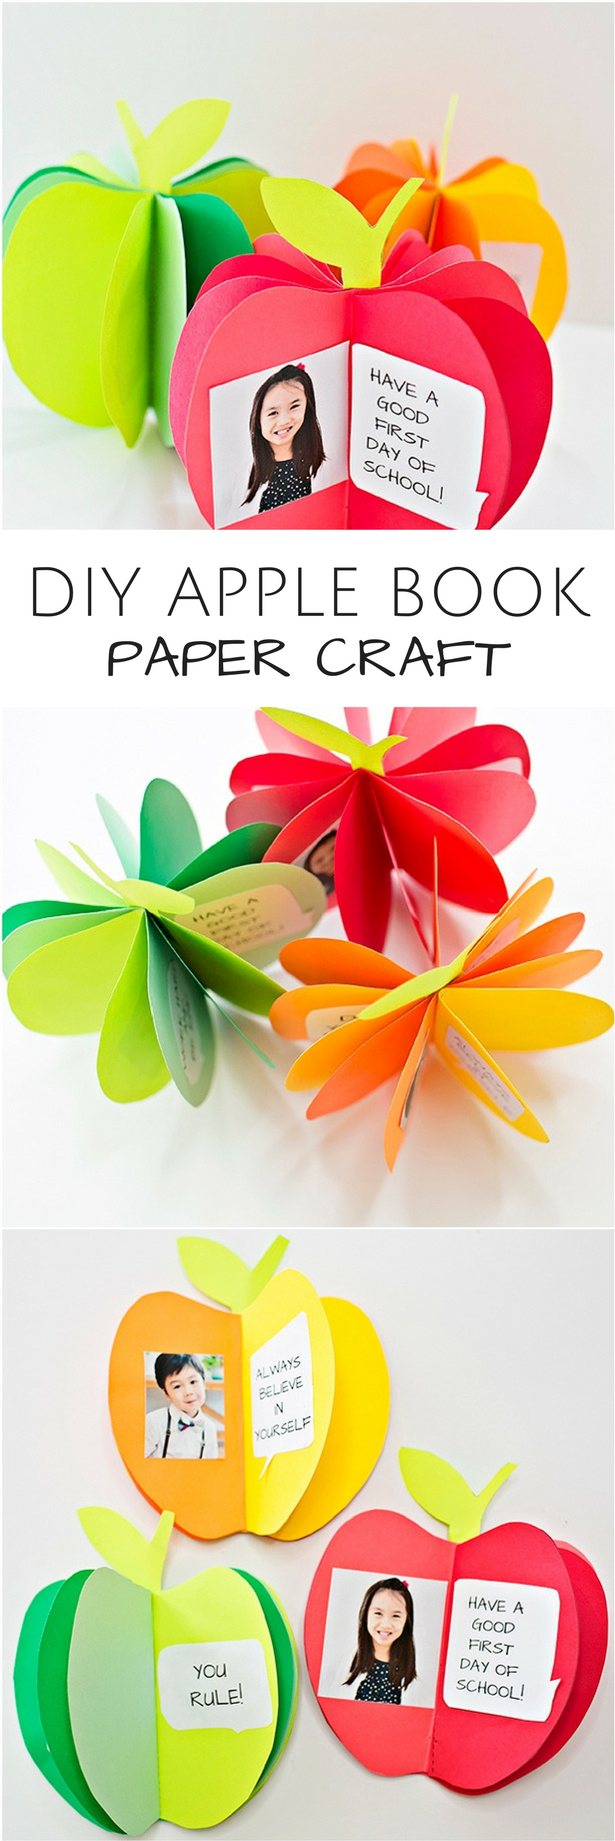 MAKE A 3D PAPER APPLE BOOK CRAFT | Classroom | Back to